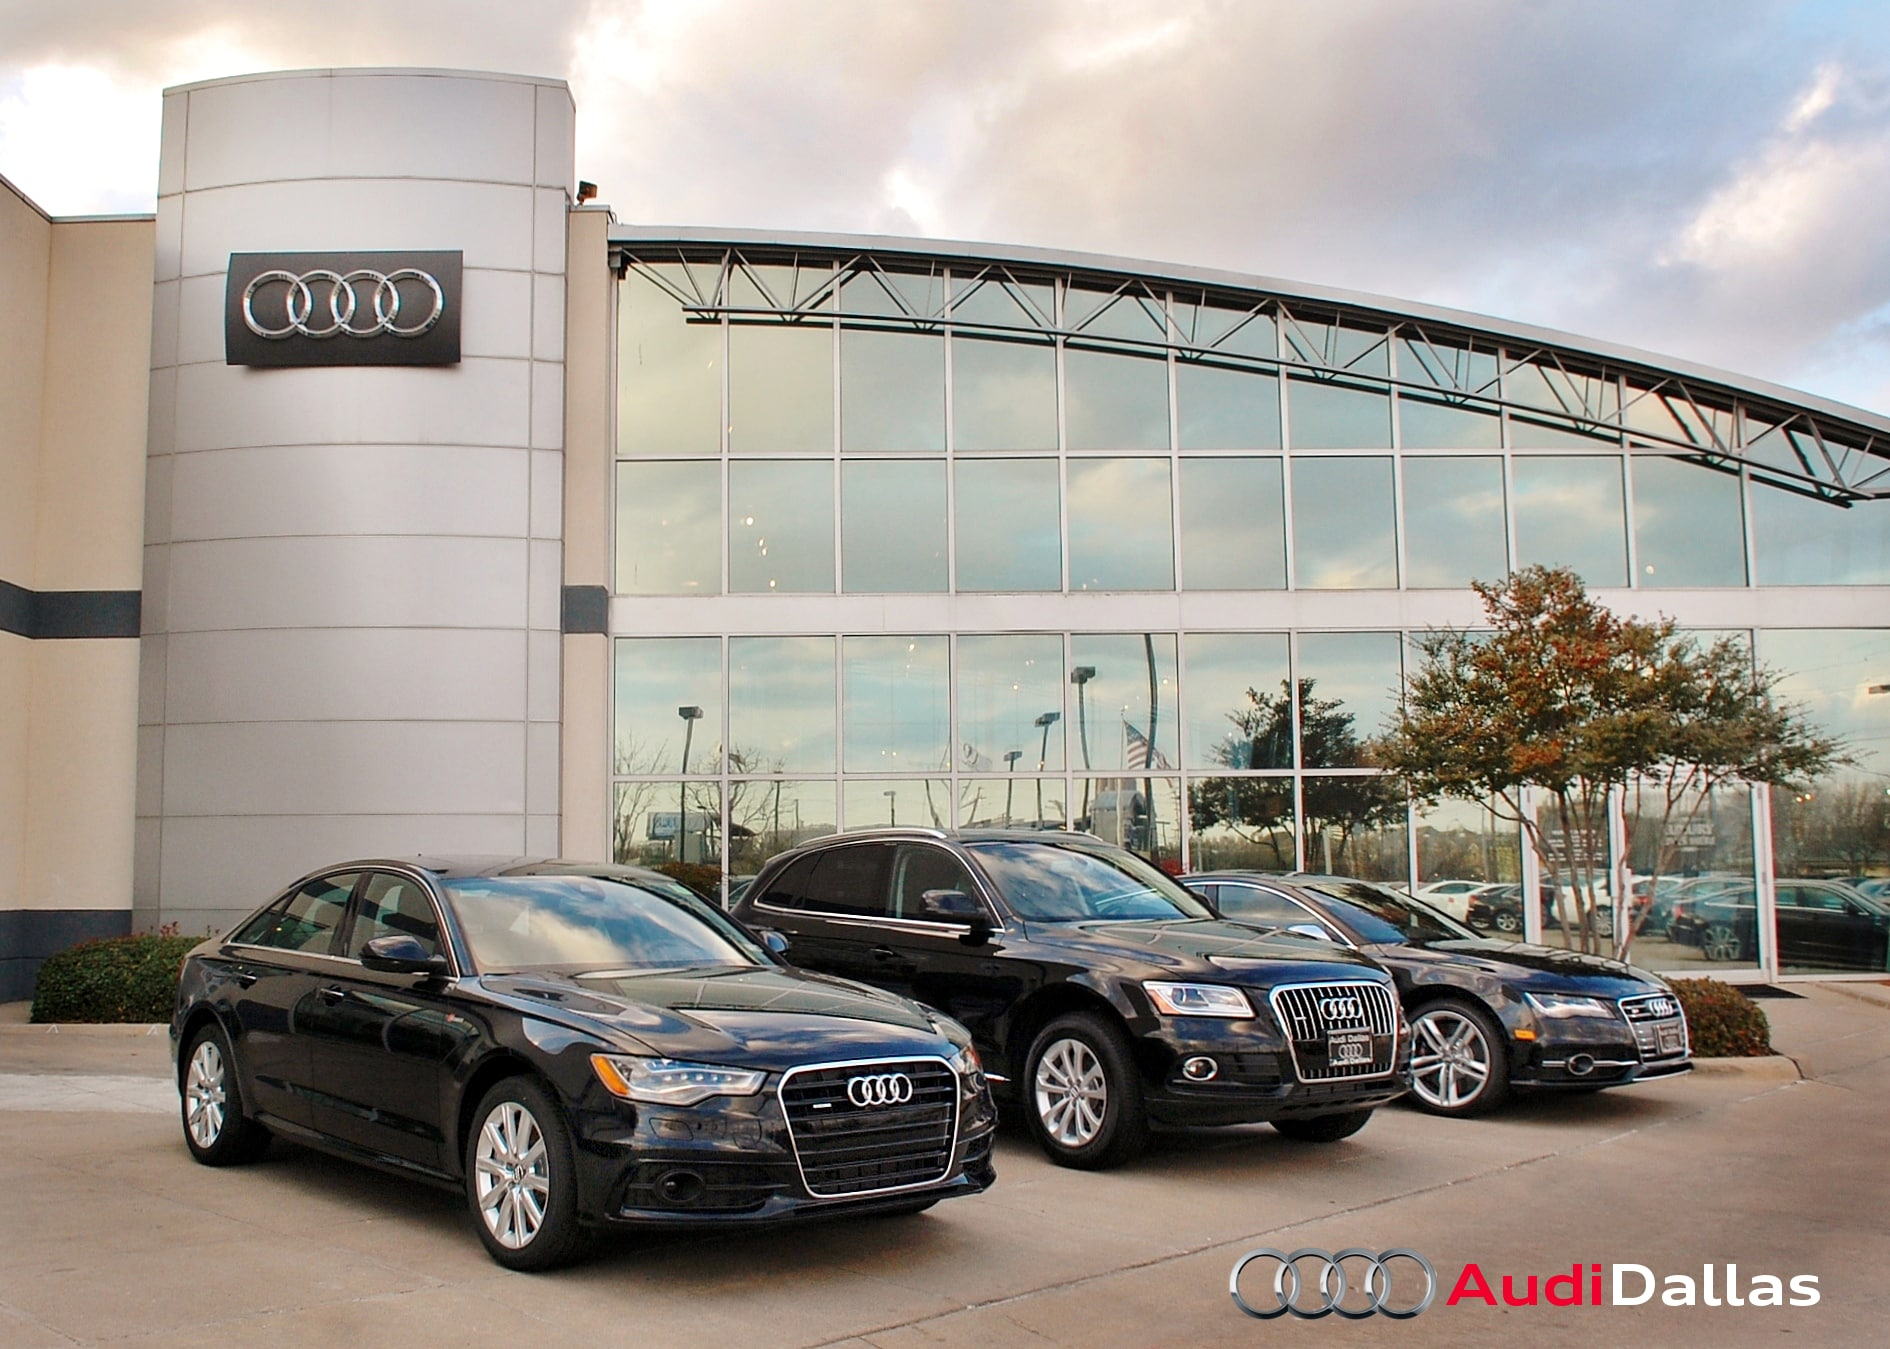 Audi Of Dallas New Car Reviews - Sewell audi